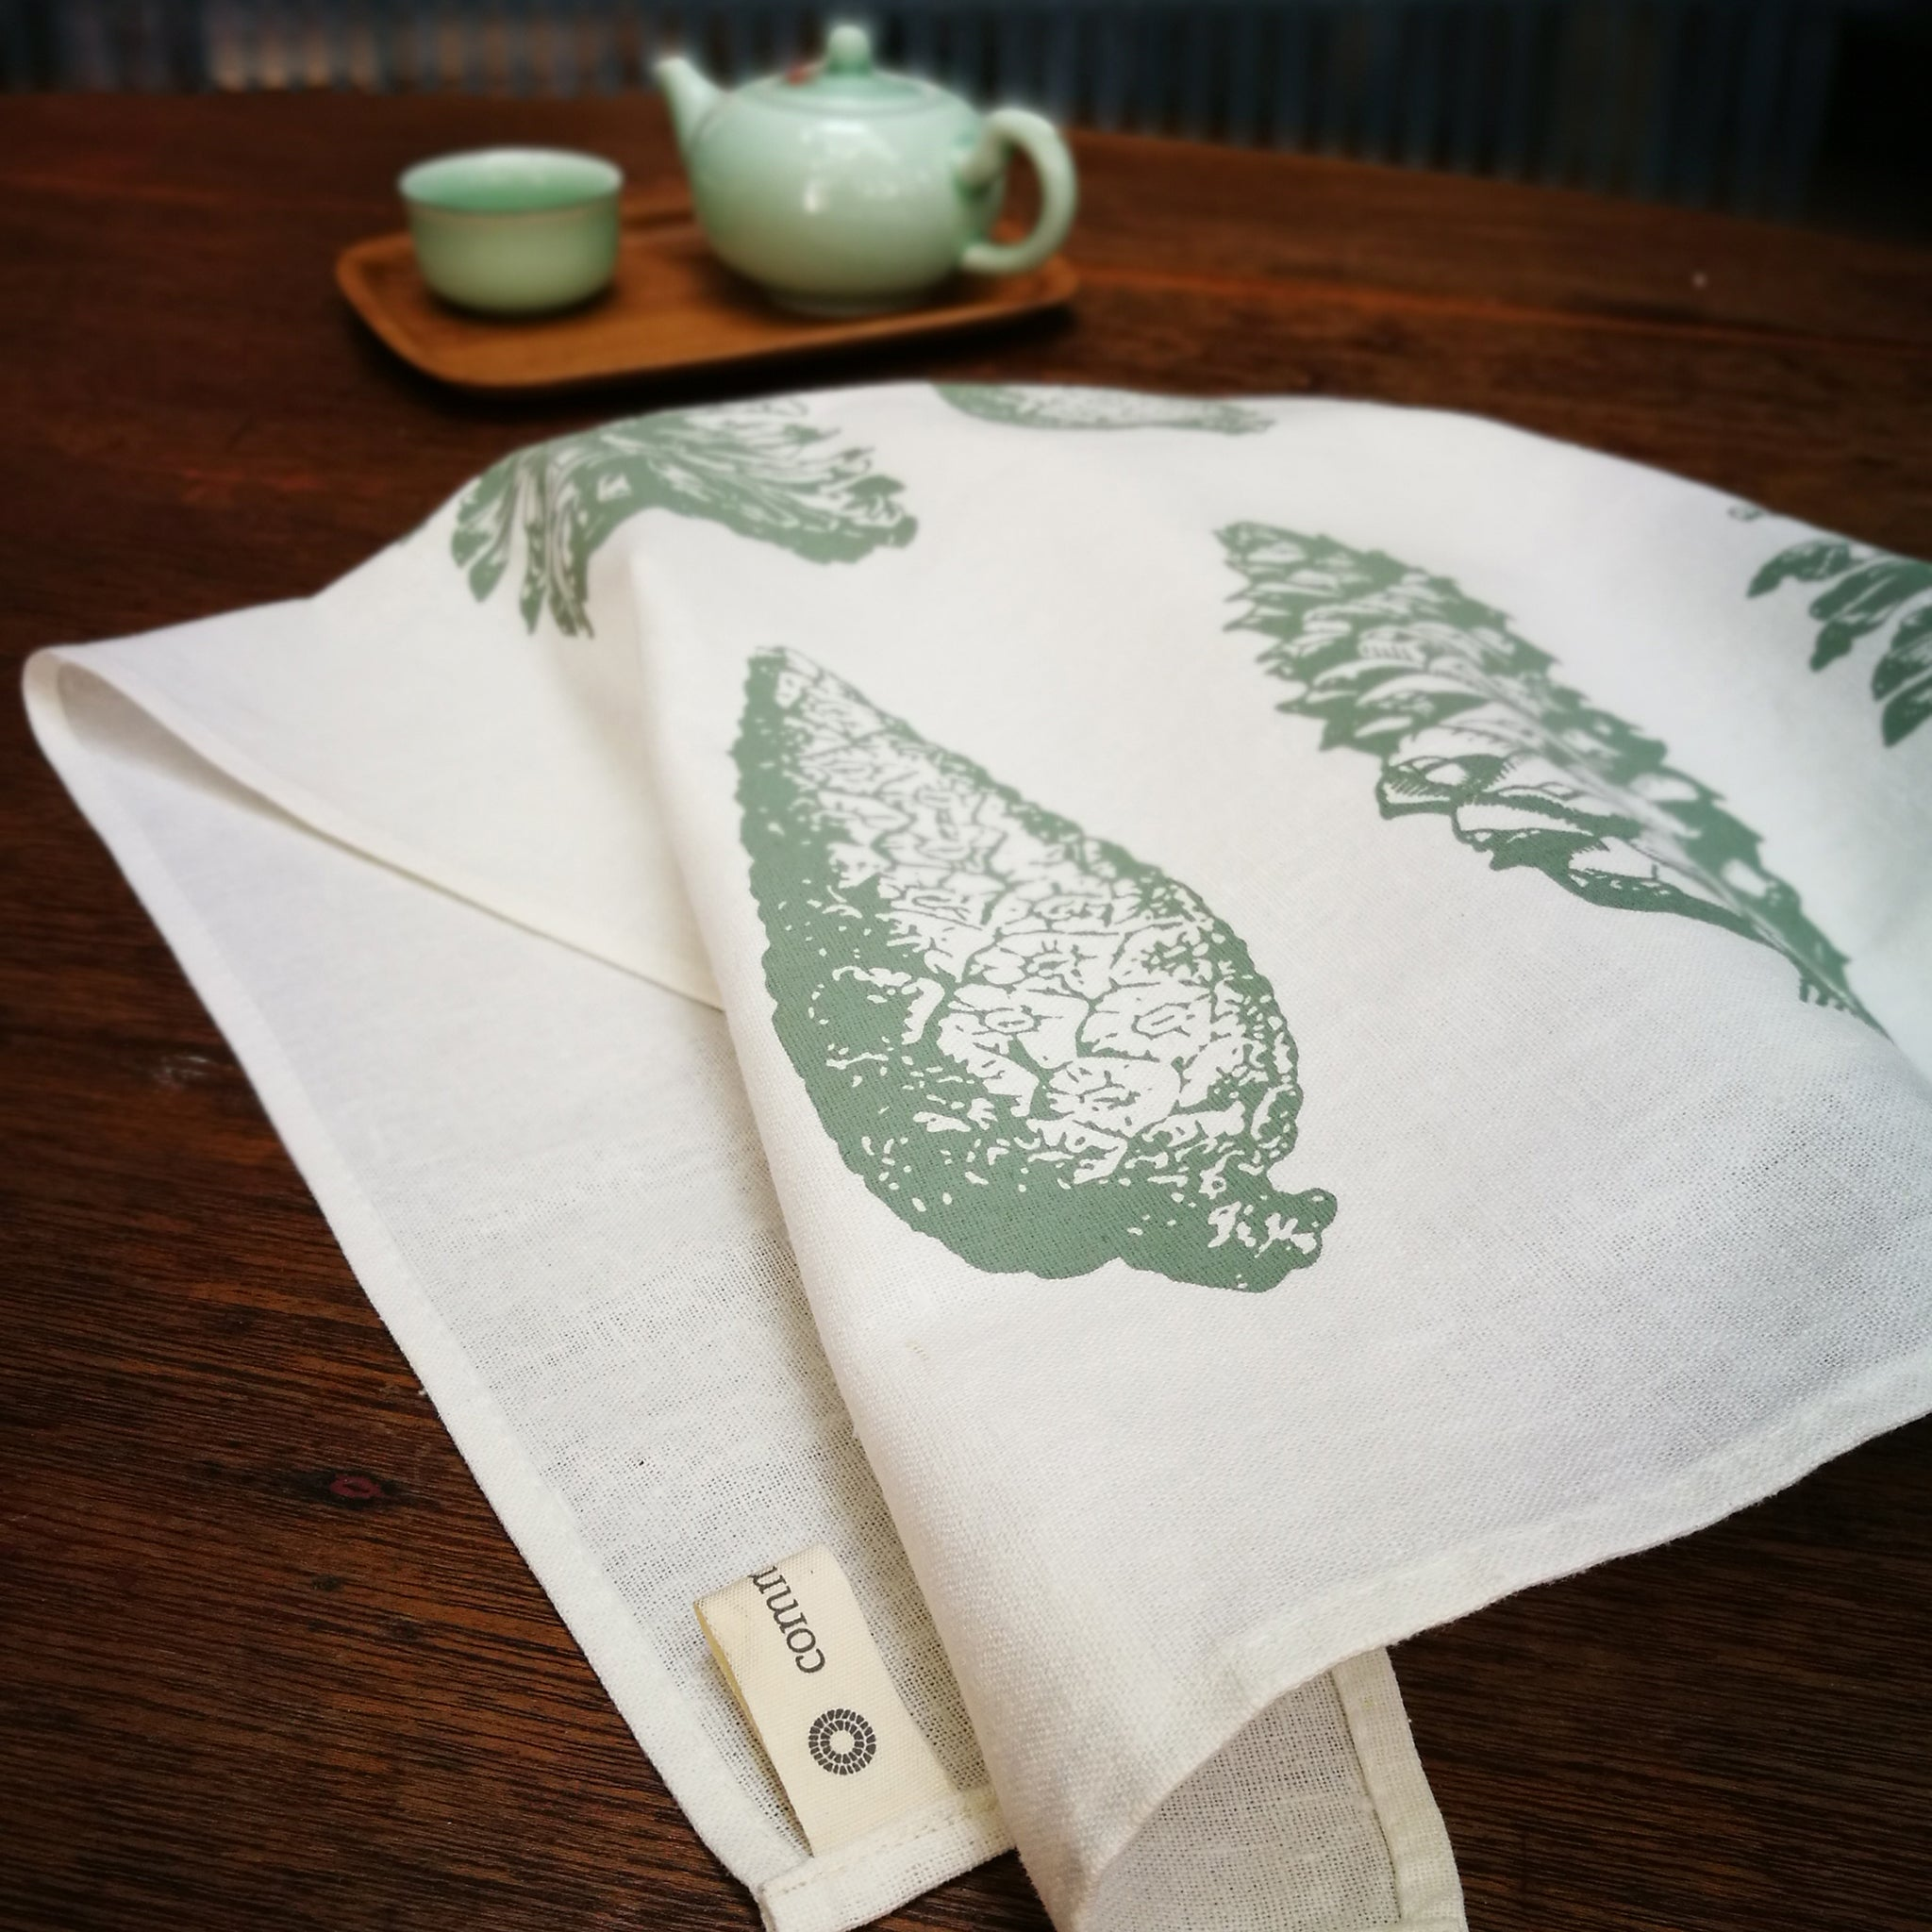 Common Texture kitchen tea dish towels on ecru linen cotton with pine cone botanical print in sage green and misty grey.